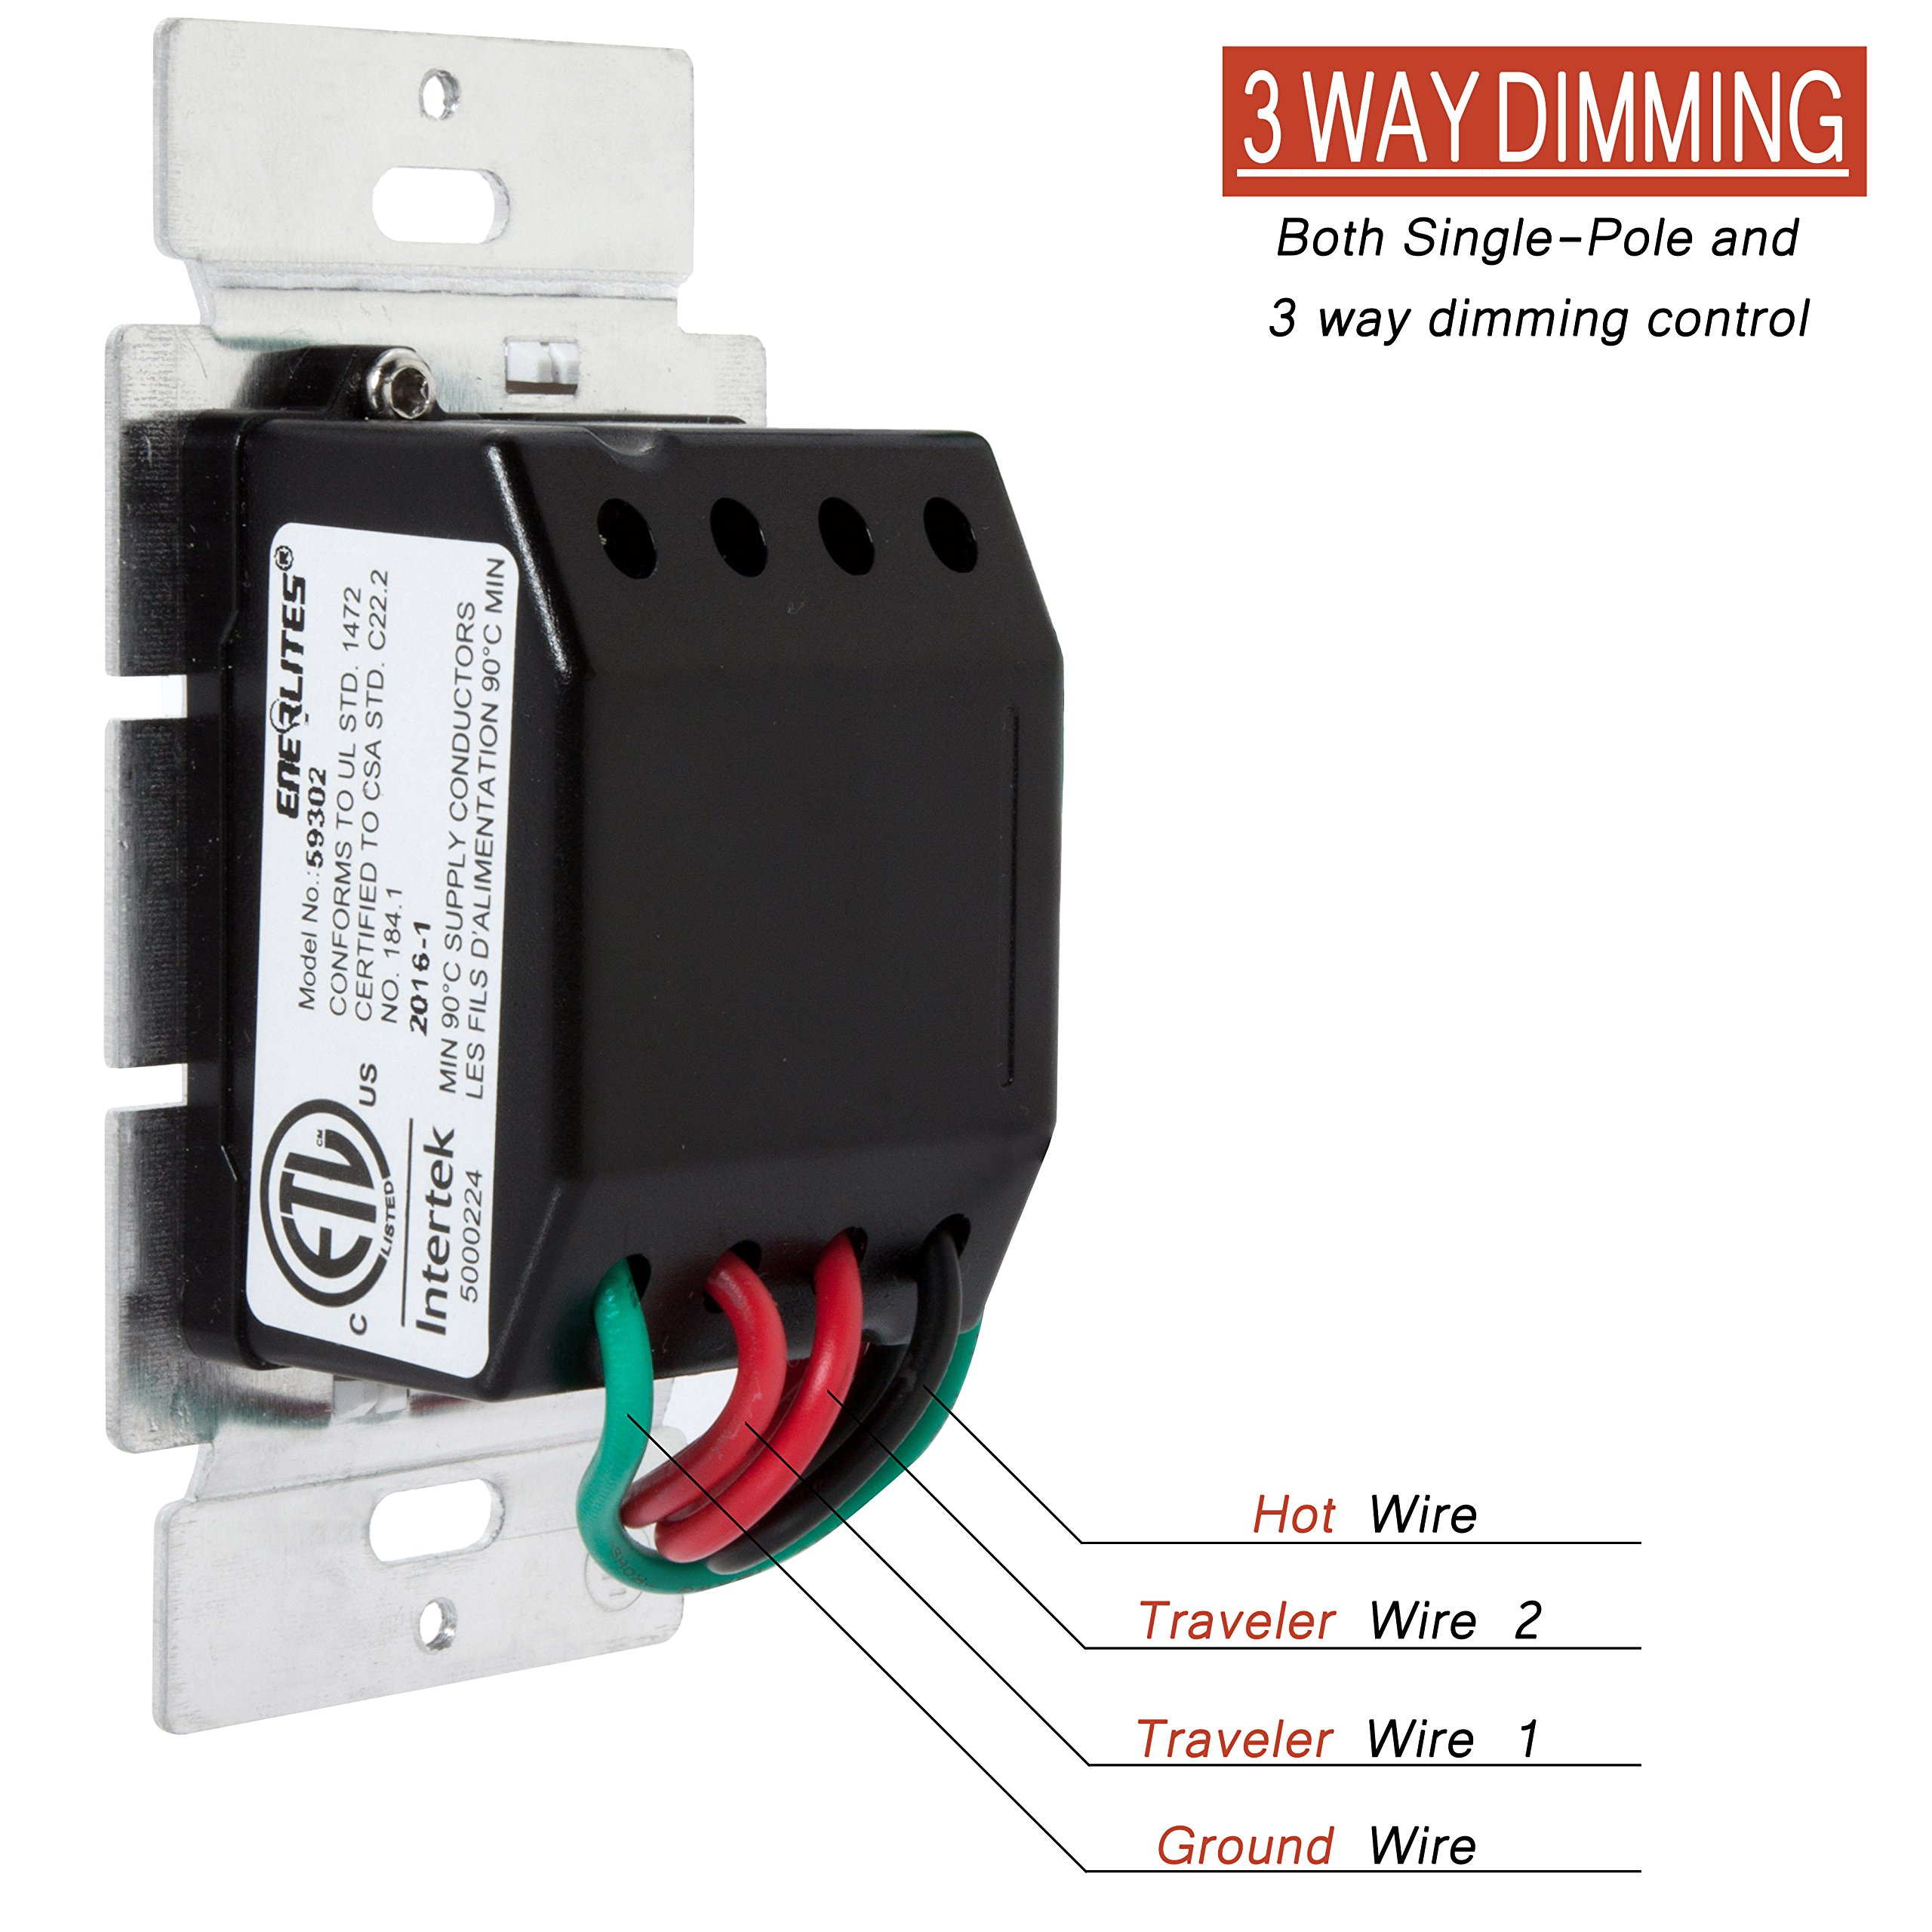 Enerlites Light Switch Dimmer Led 59302 W 3 Way In Wall Multi Location For Dimmable Cfl Incandescent